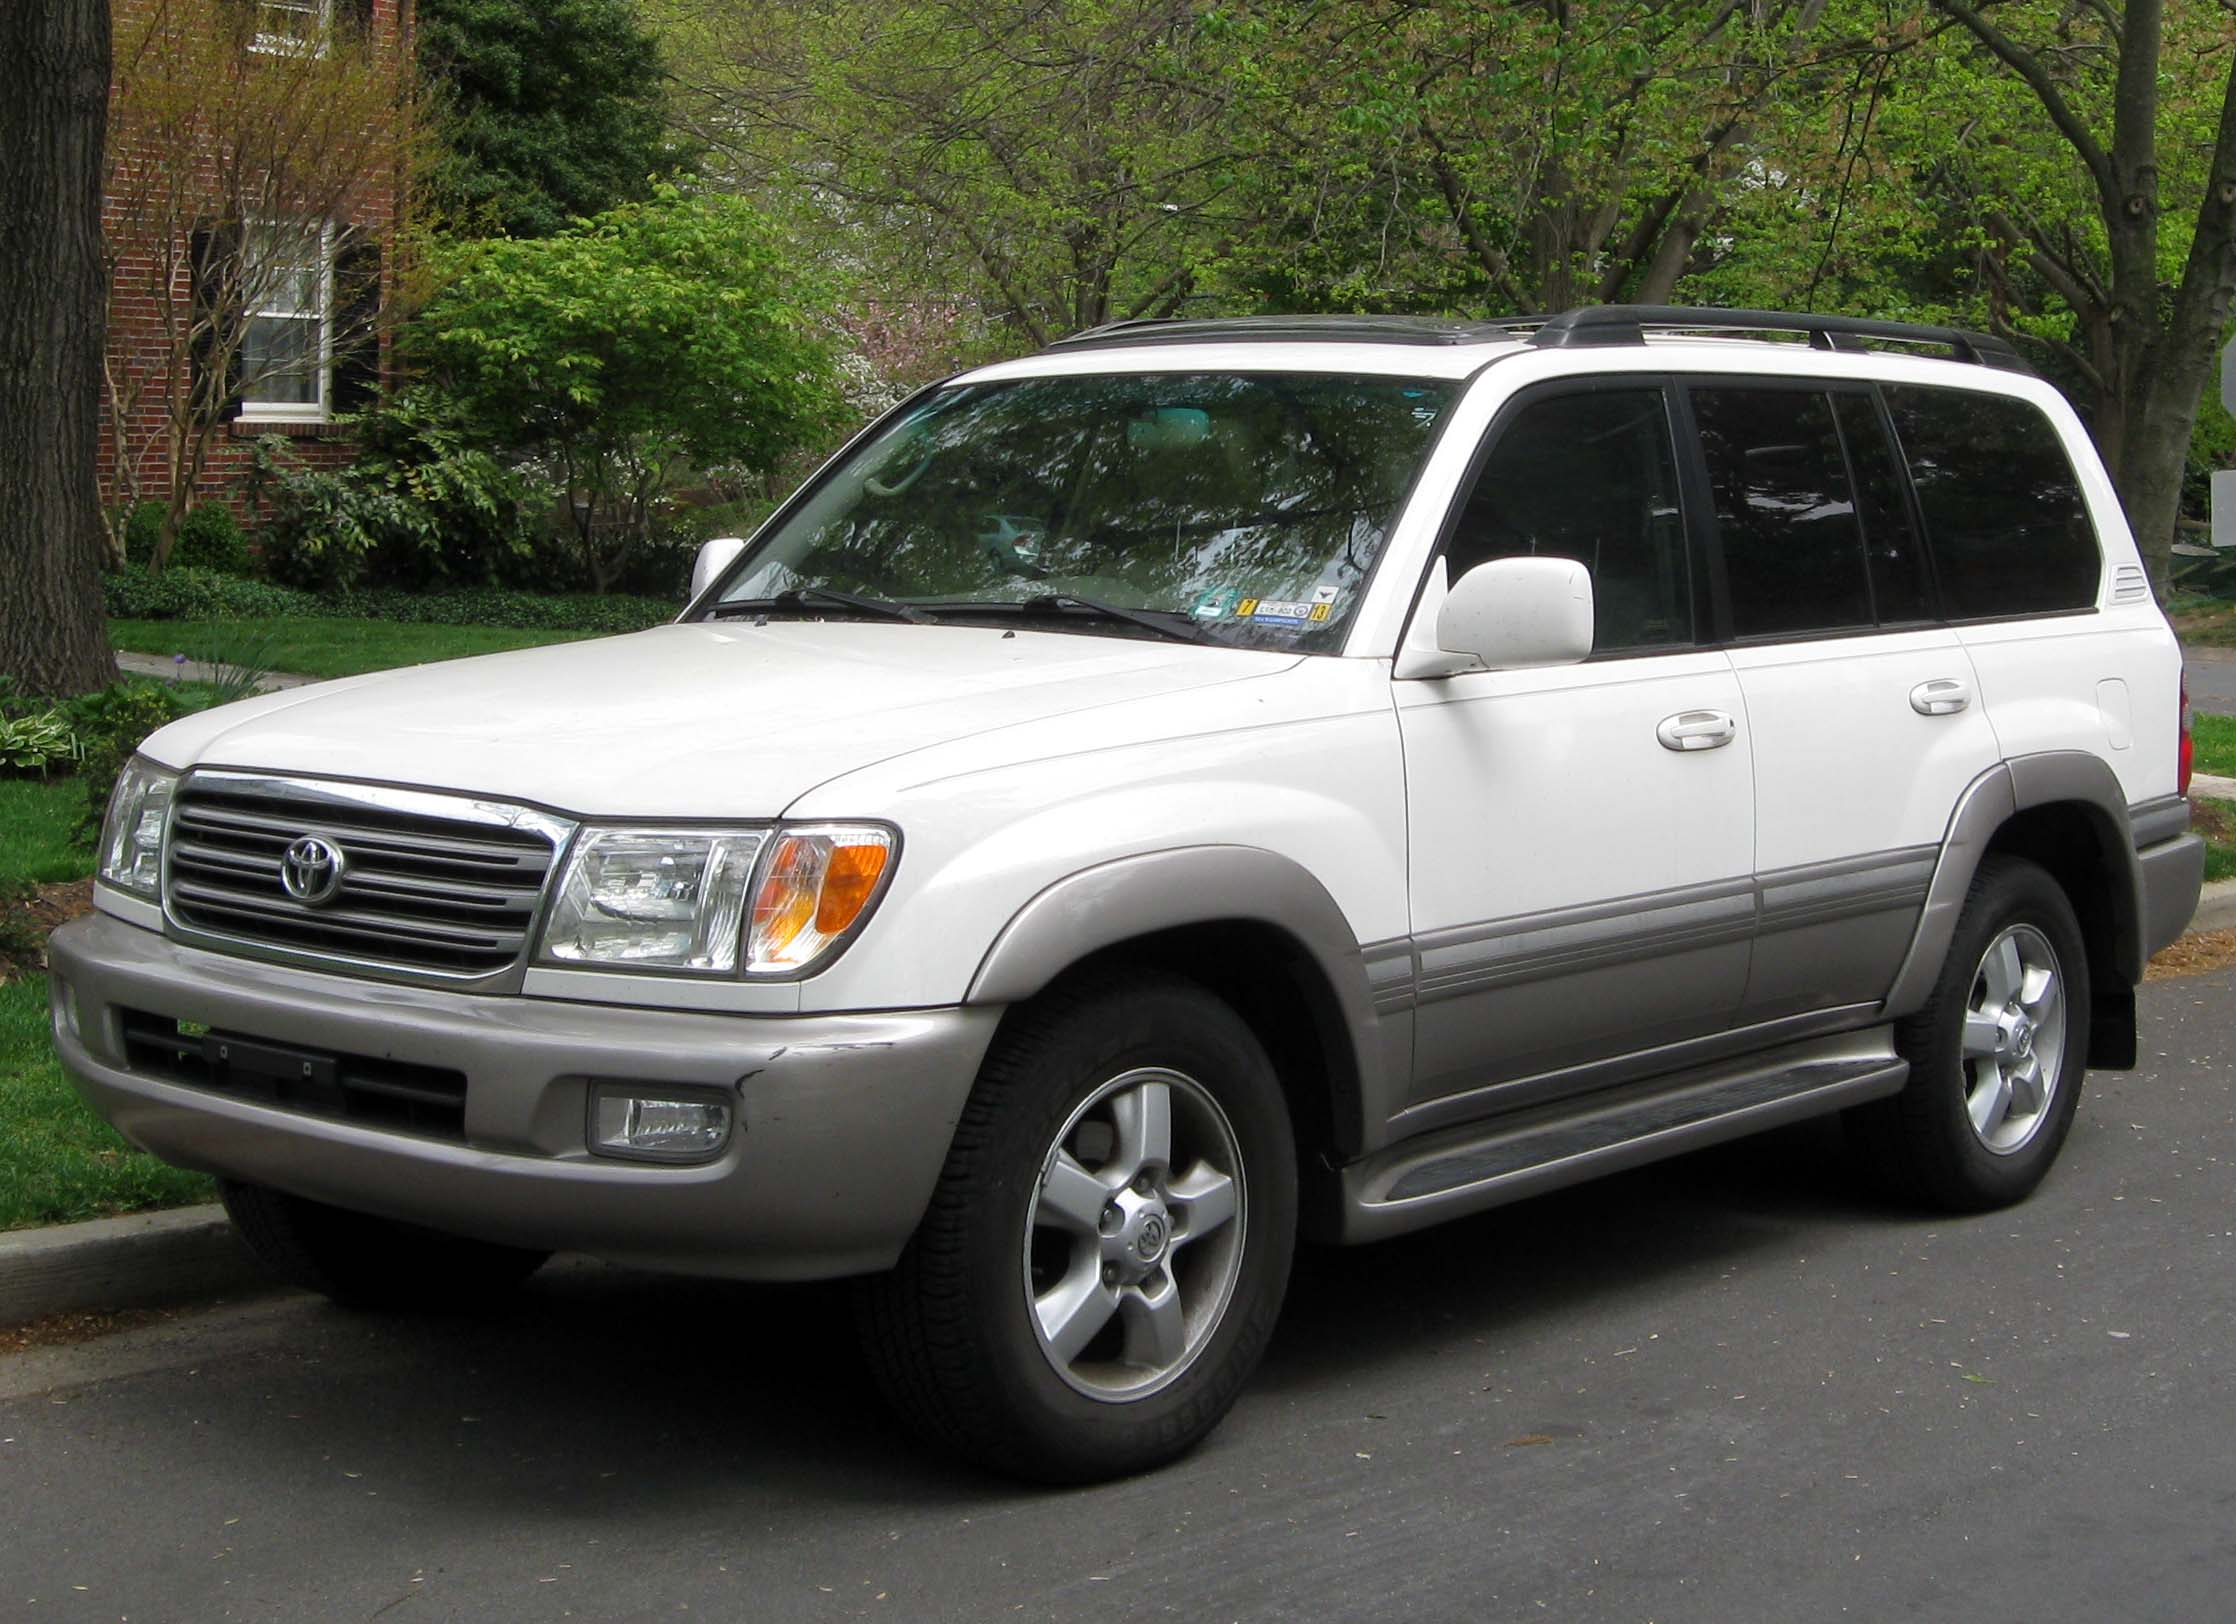 2007 Toyota Land Cruiser #14